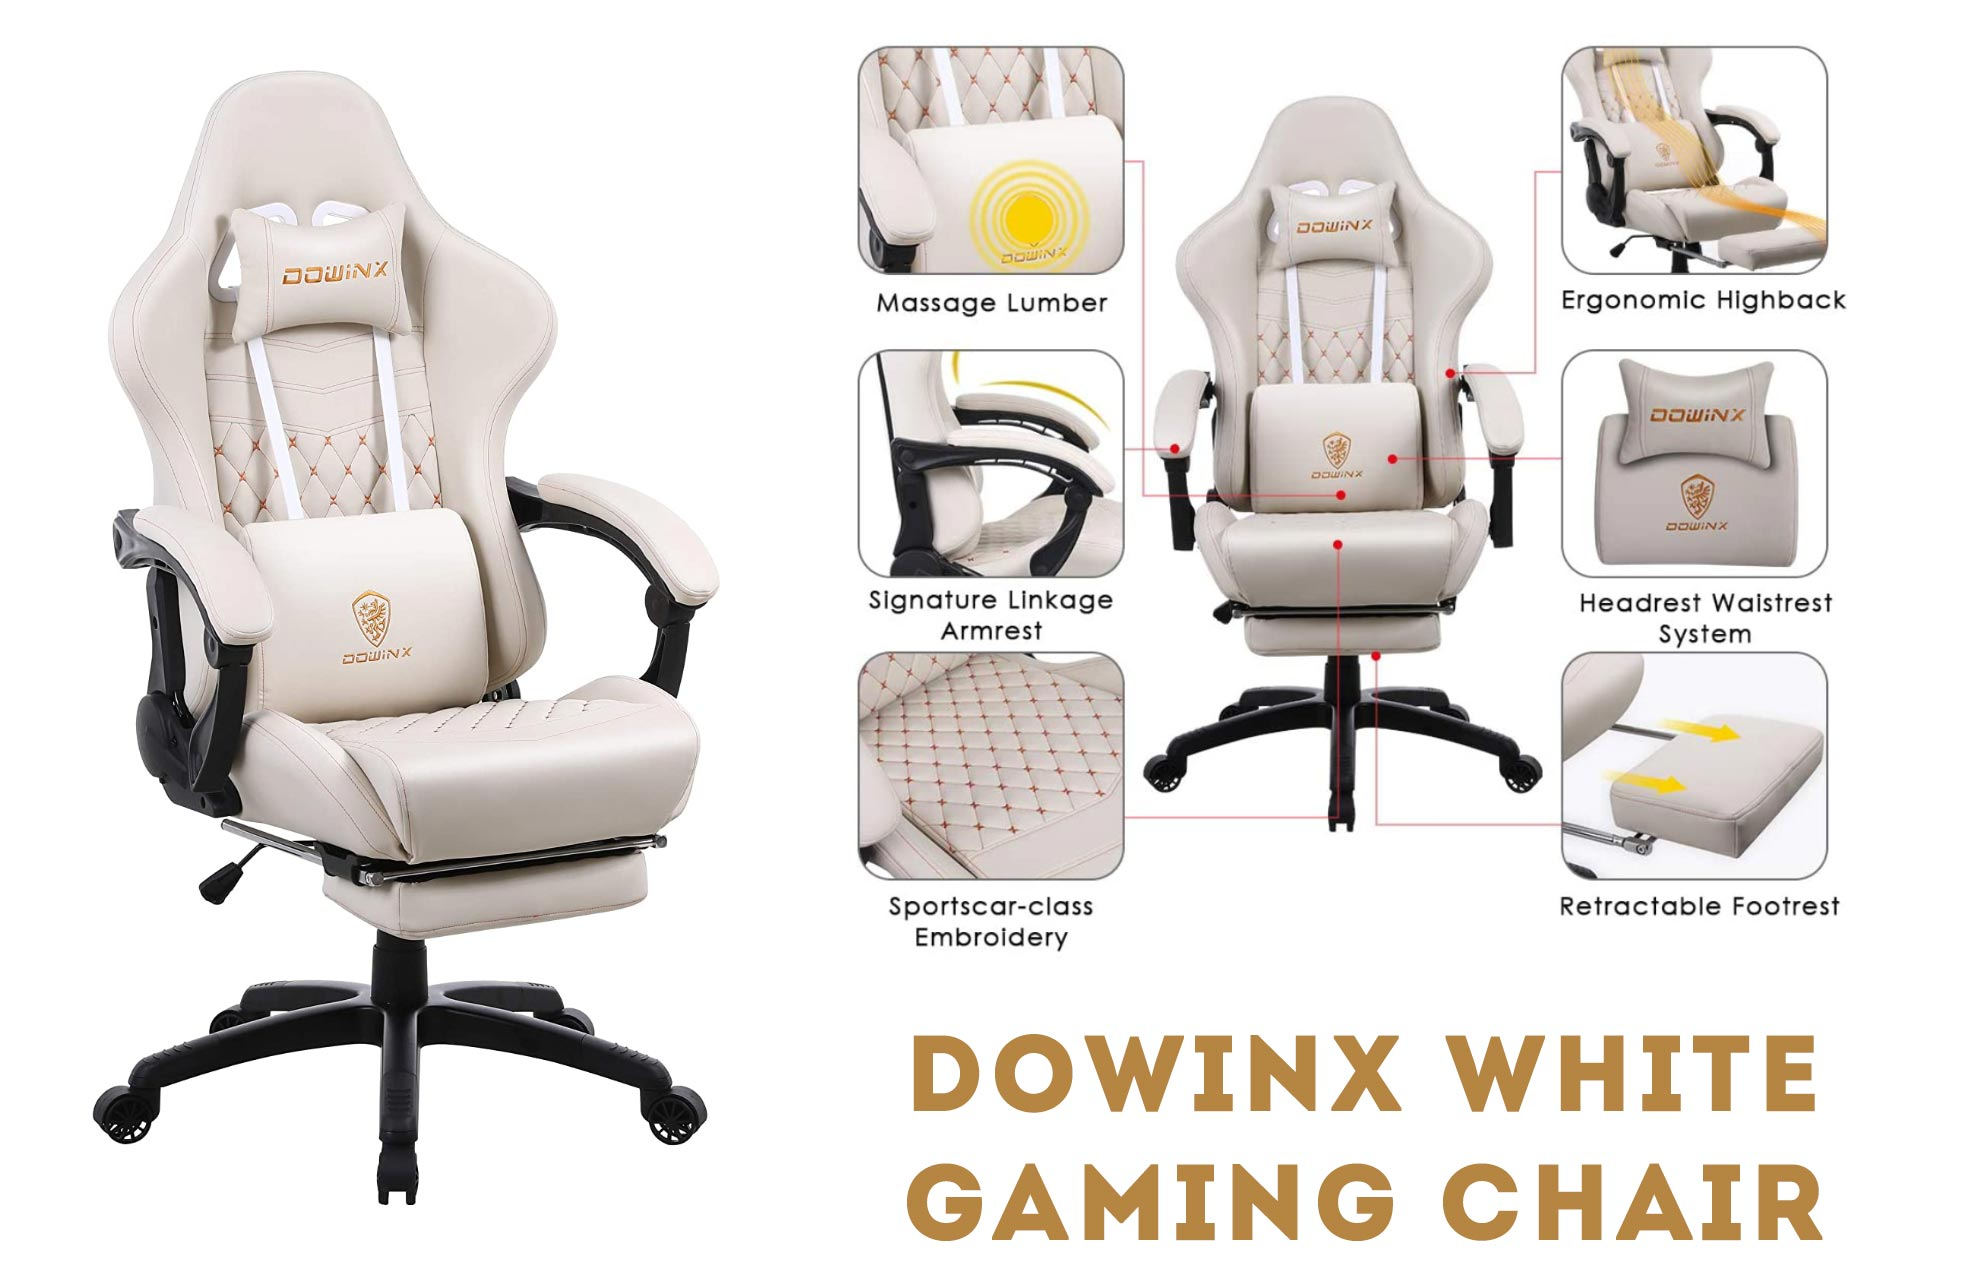 Dowinx white gaming chair